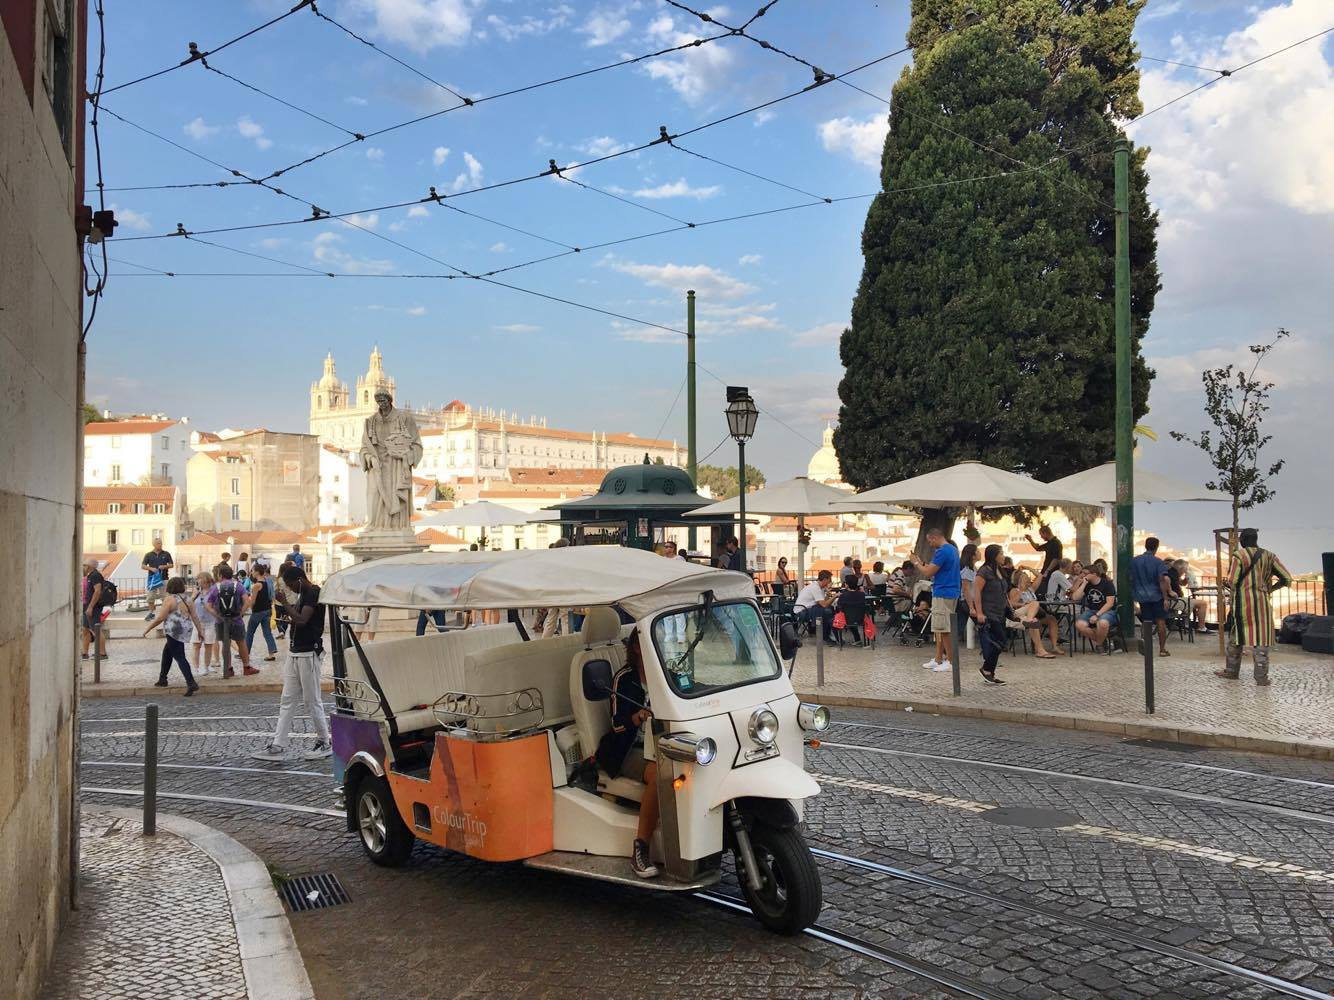 Tuk Tuk in Lisbon, Portugal